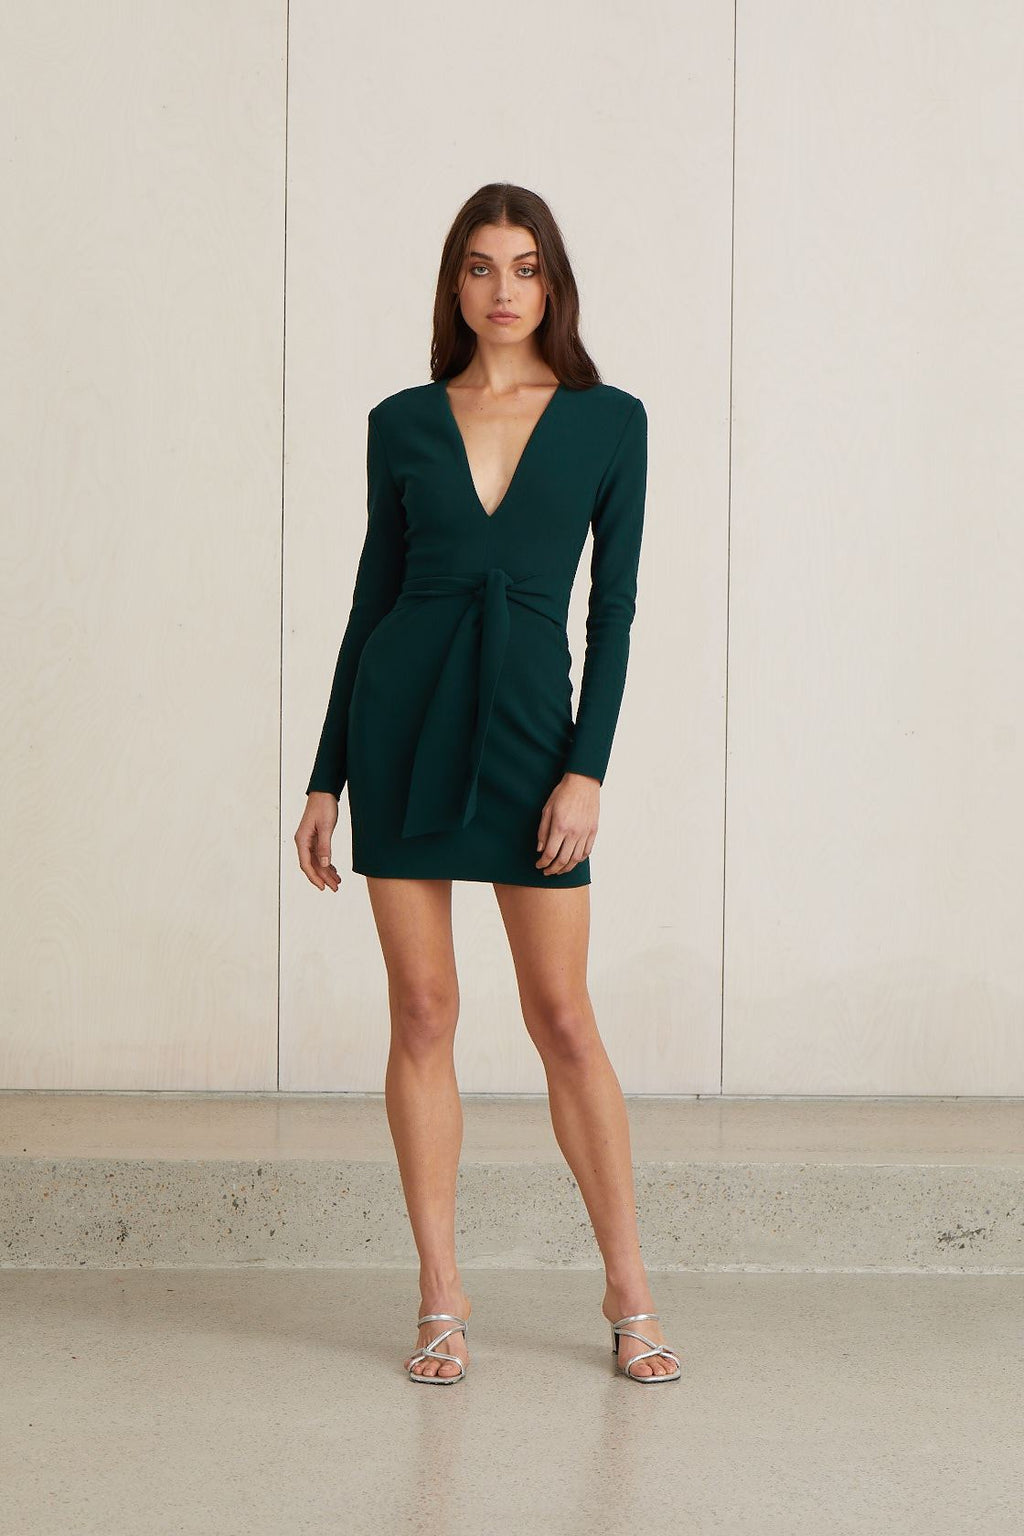 Bec & Bridge Valentine Long Sleeve Mini Dress (For Hire)